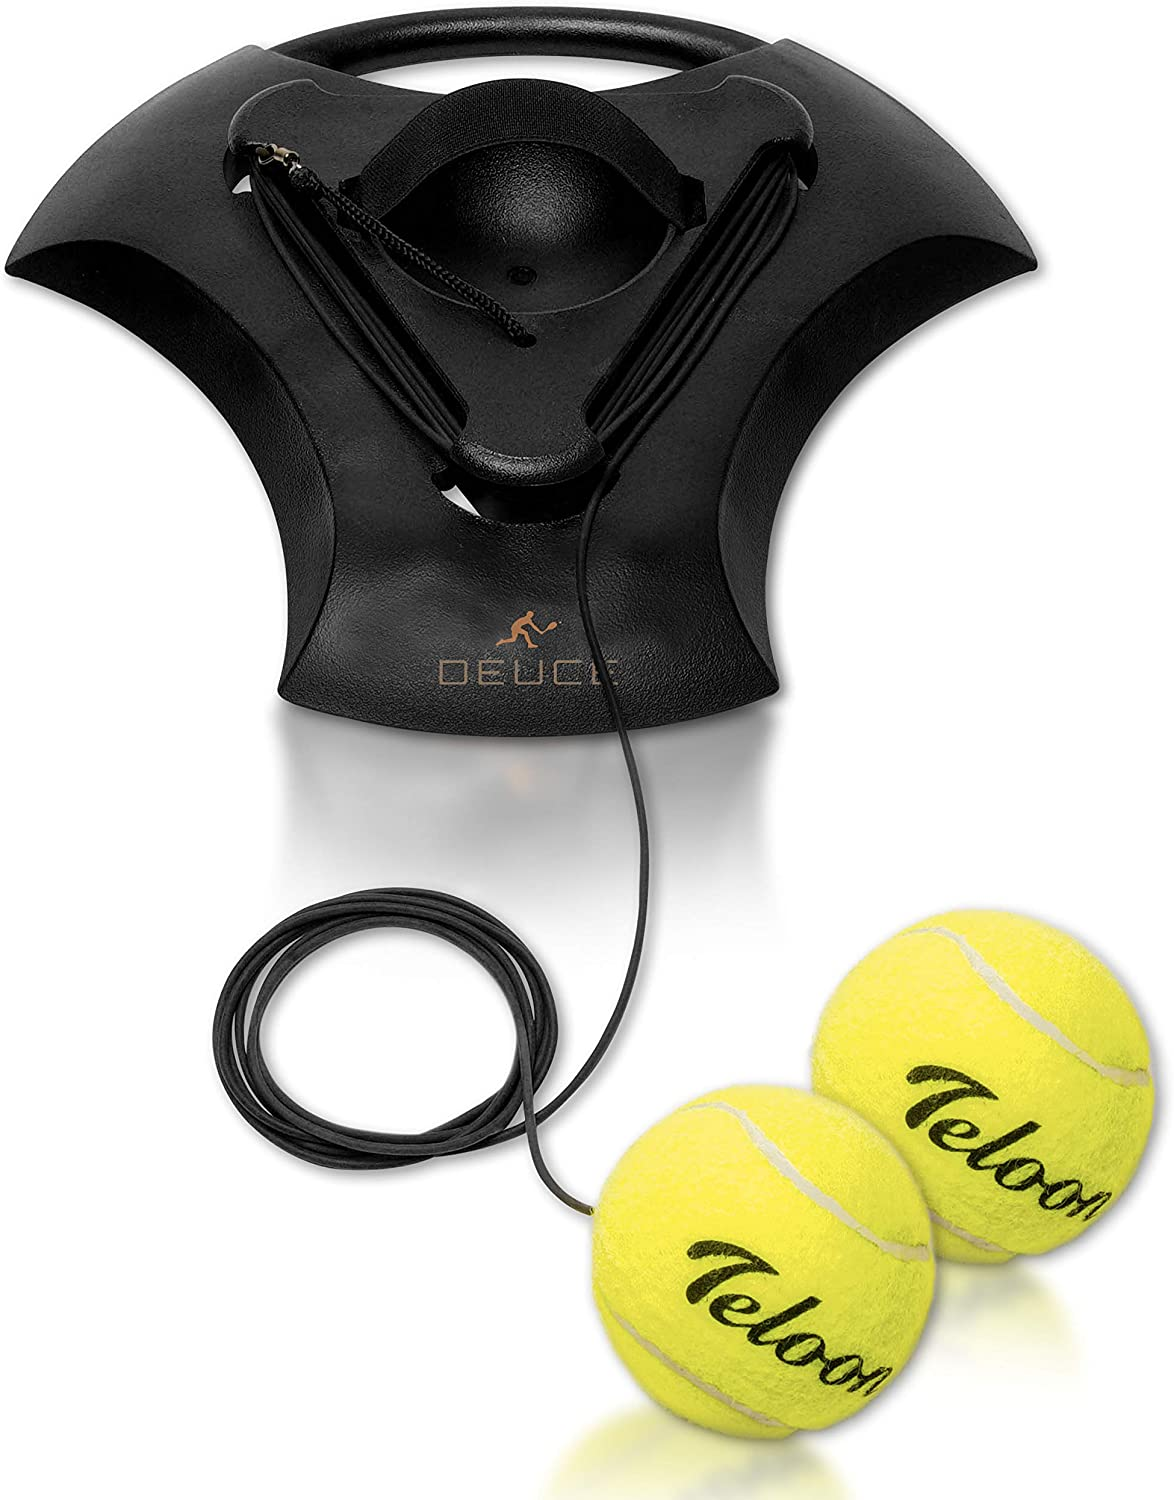 DEUCE Tennis Training Self Trainer Pro Tennis Equipment for Tennis Sports Training – Includes 2 Balls, 2 Elastic Cord and Weighted Base - Enhance Cardio, Stamina, Quickness and More : Sports & Outdoors